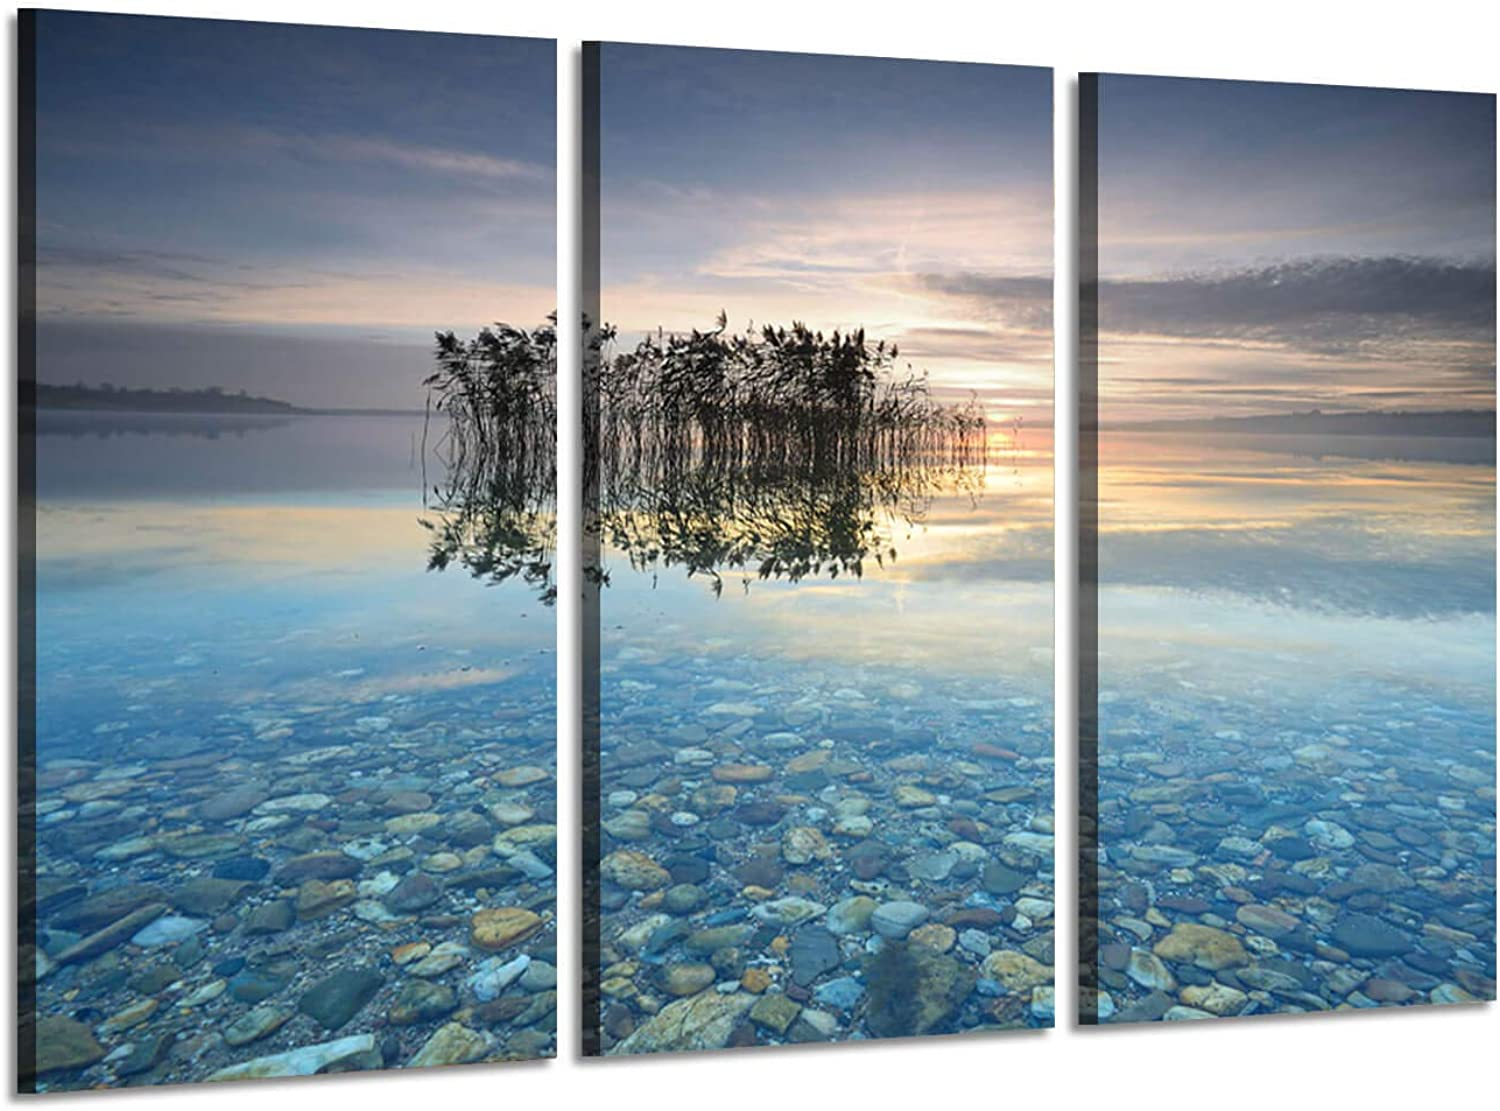 Scene Picture Beach Landscape Artwork  Water Tree on Higher Ground in Summer Sunrise Print Multi-Piece Image on Wrapped Canvas for Wall Art